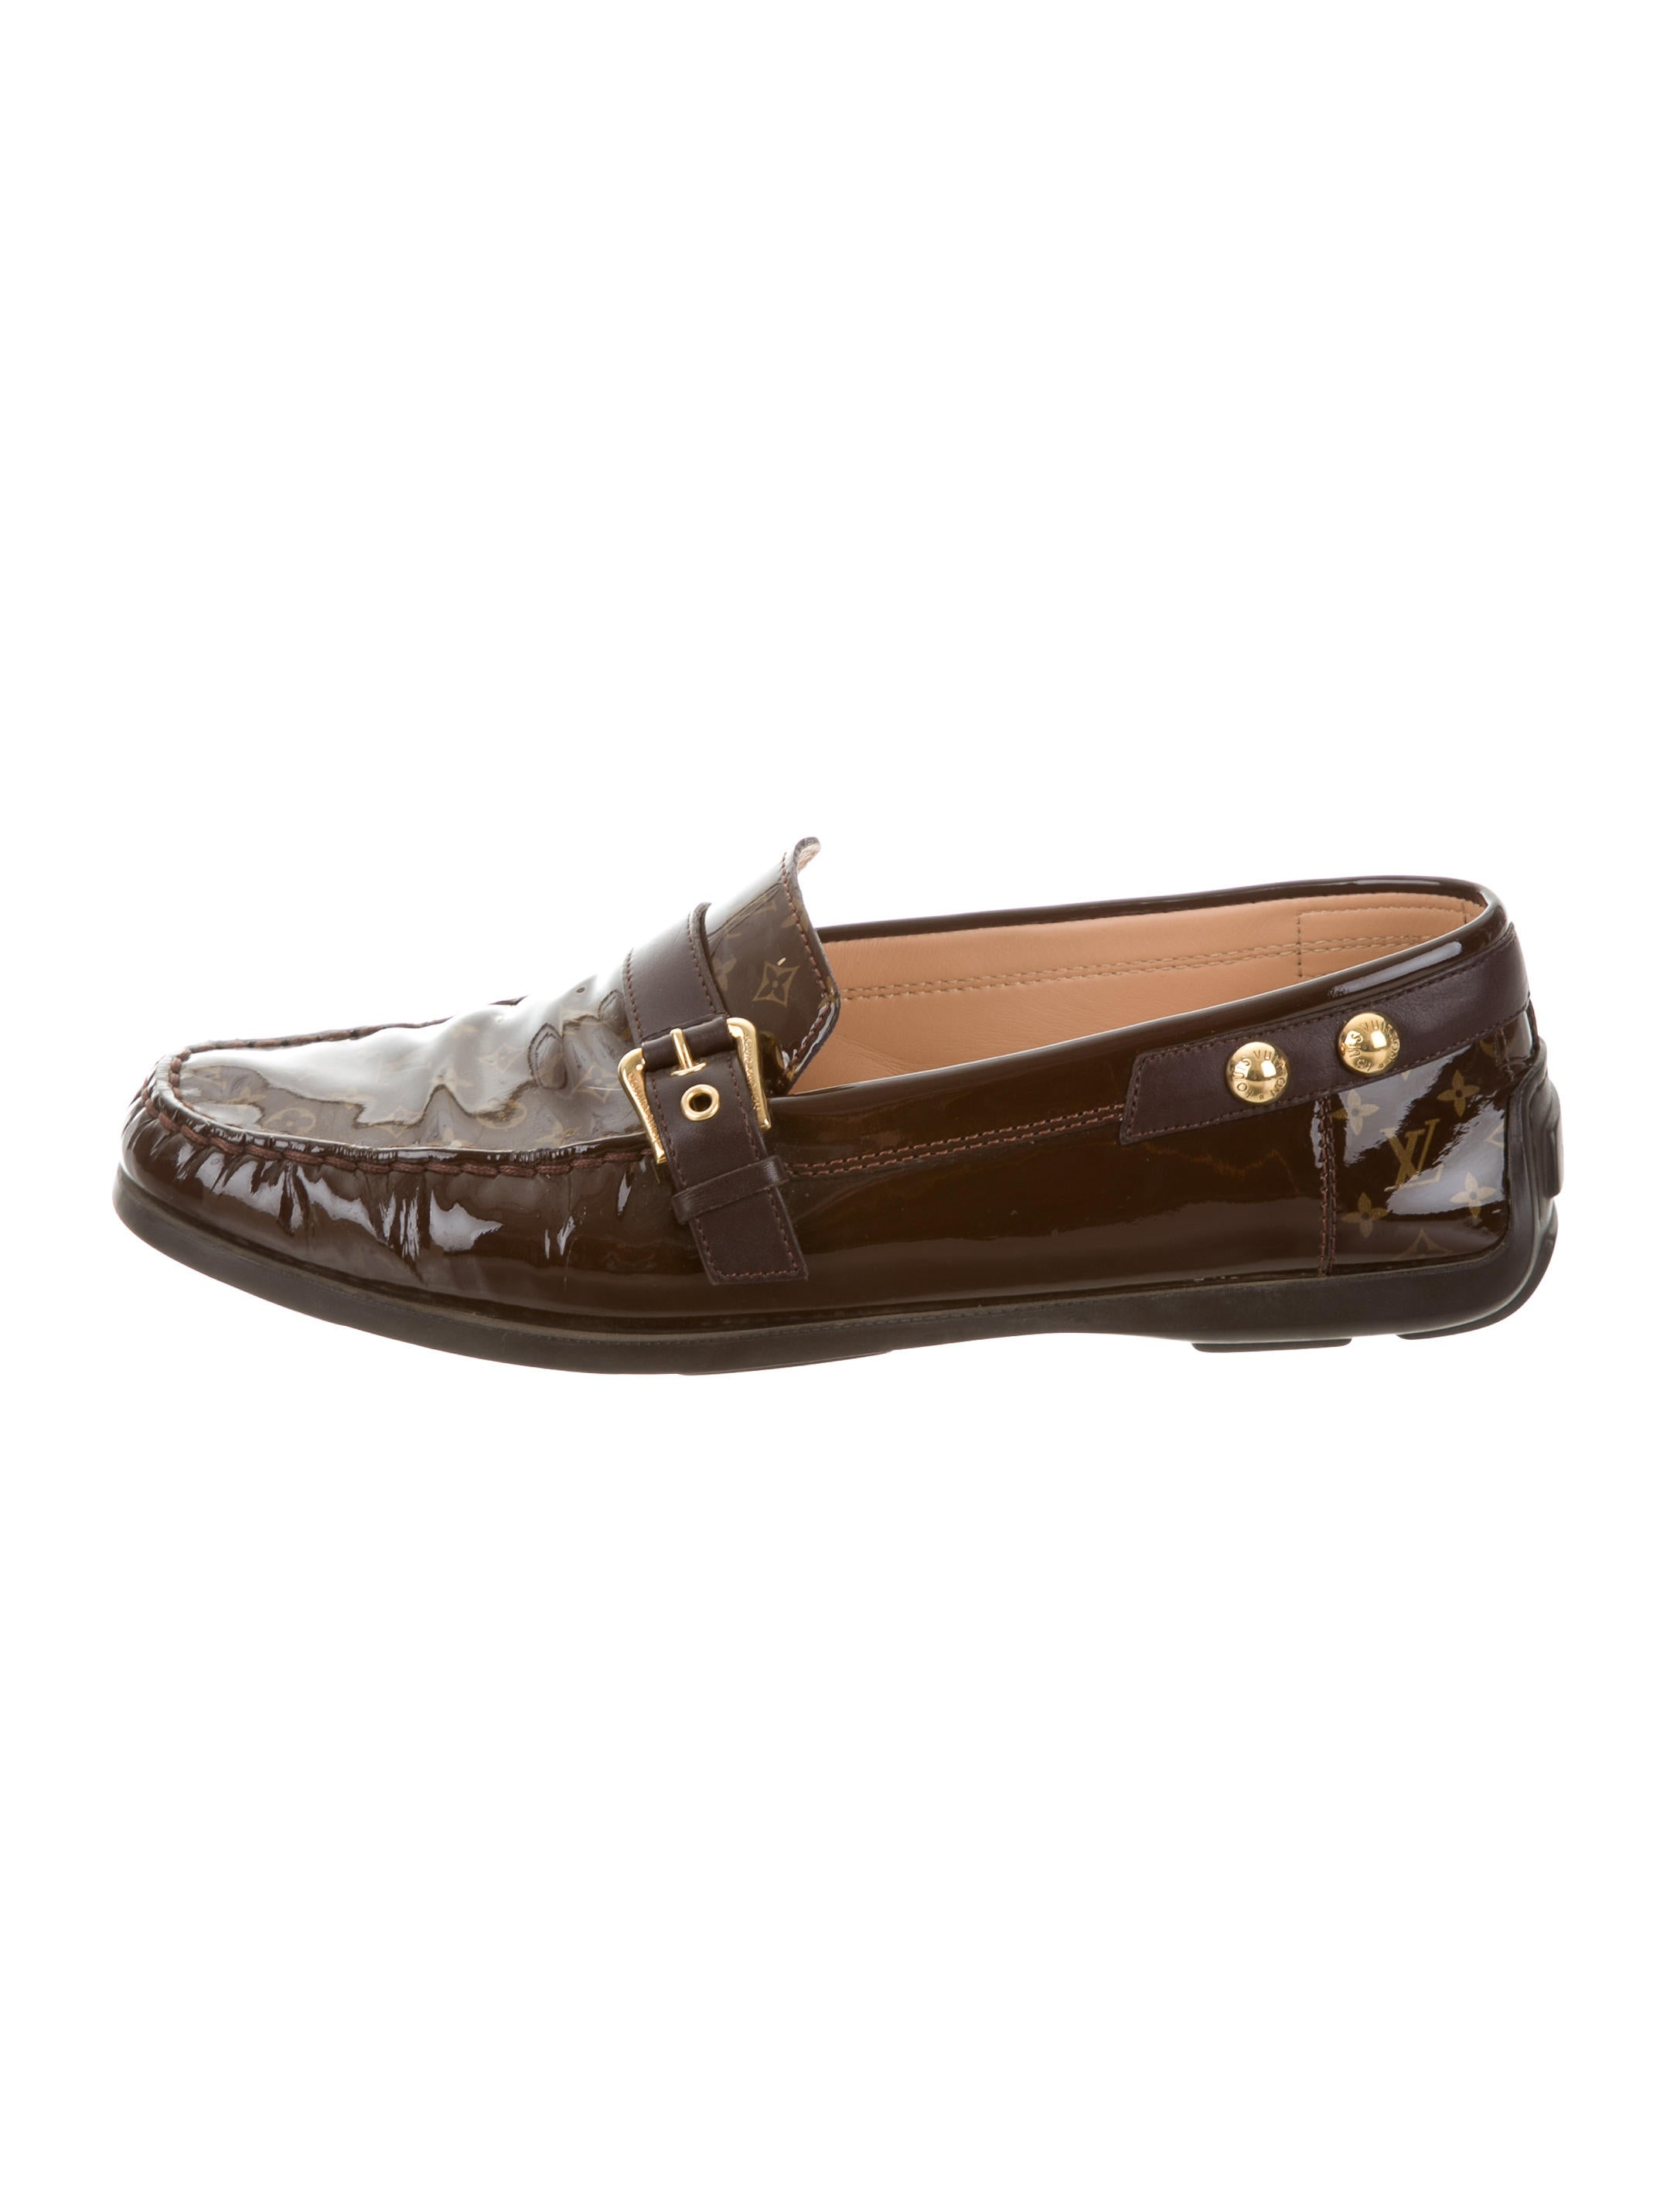 Burberry Shoes Price In India